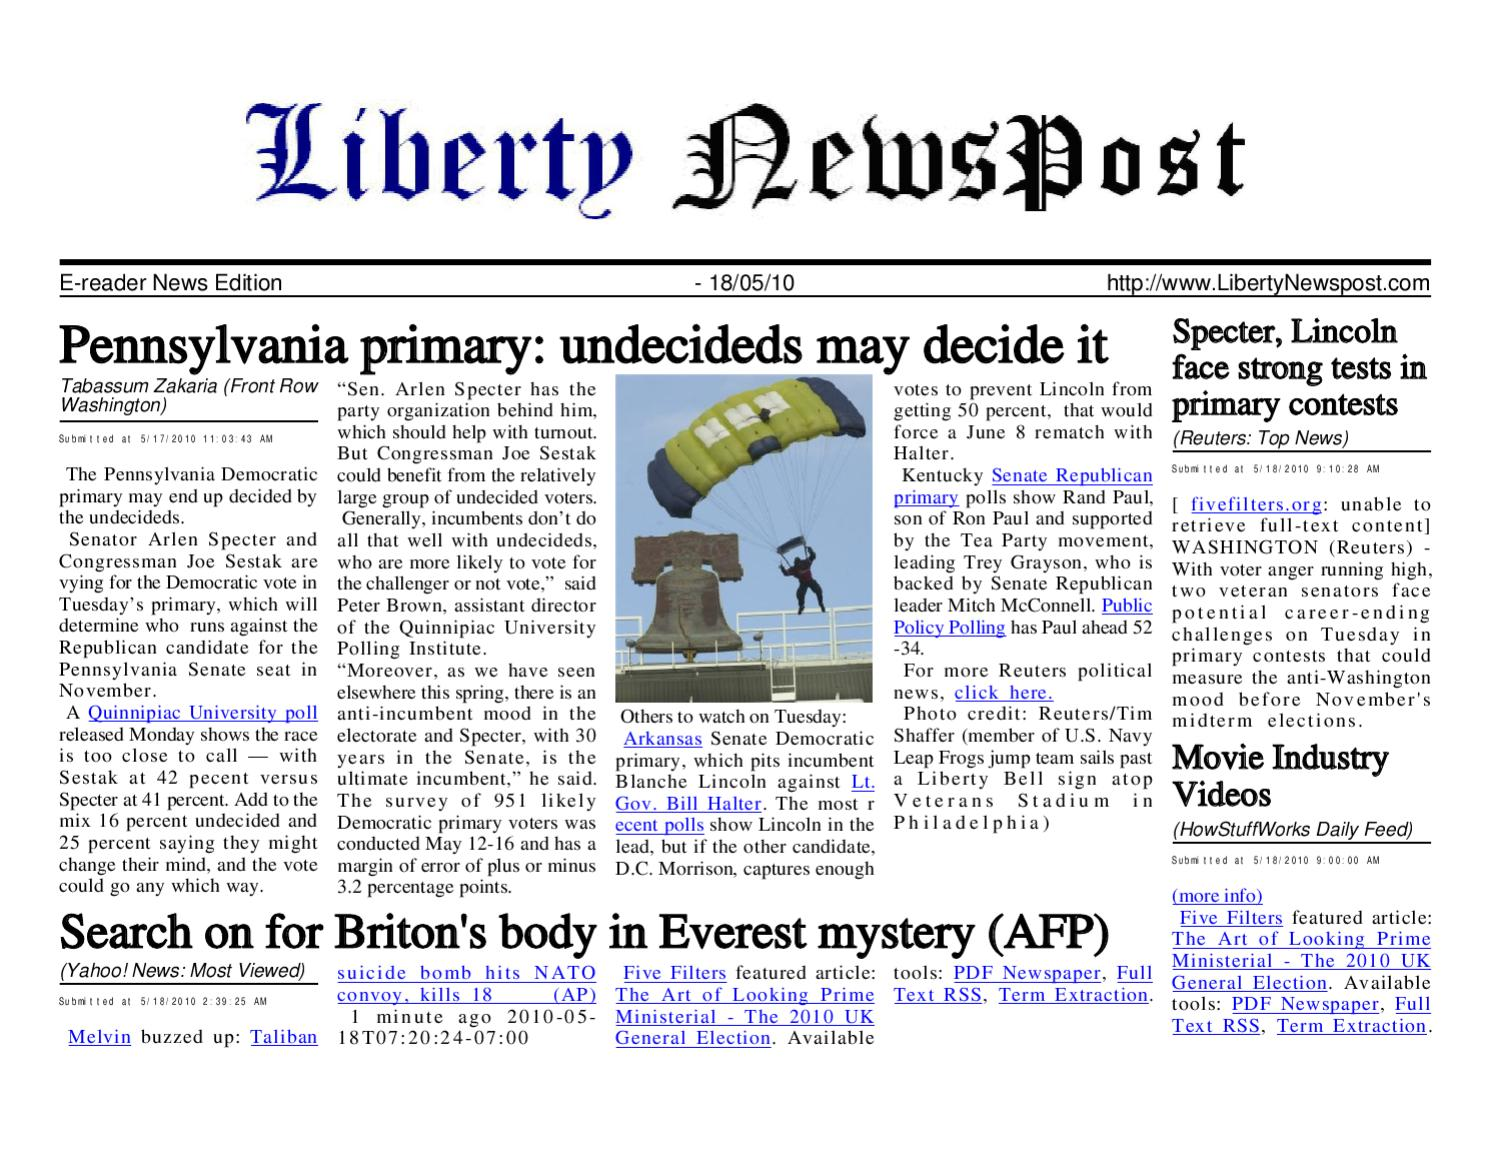 Liberty newspost may 18 10 by liberty newspost issuu fandeluxe Images